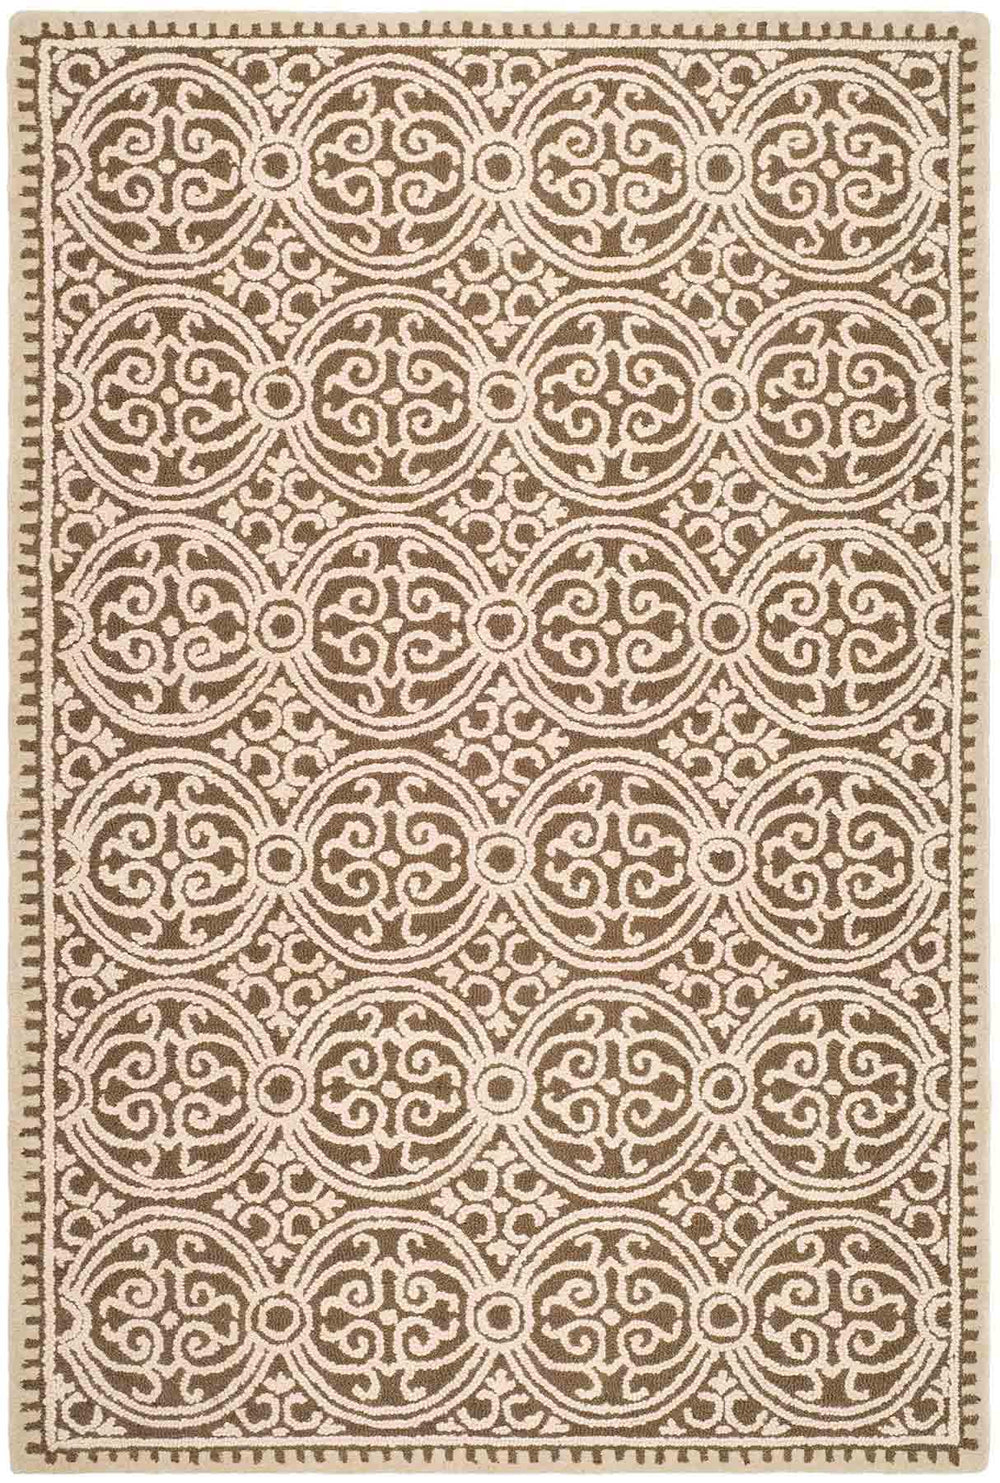 Safavieh CAMBRIDGE CAM232 Area Rug